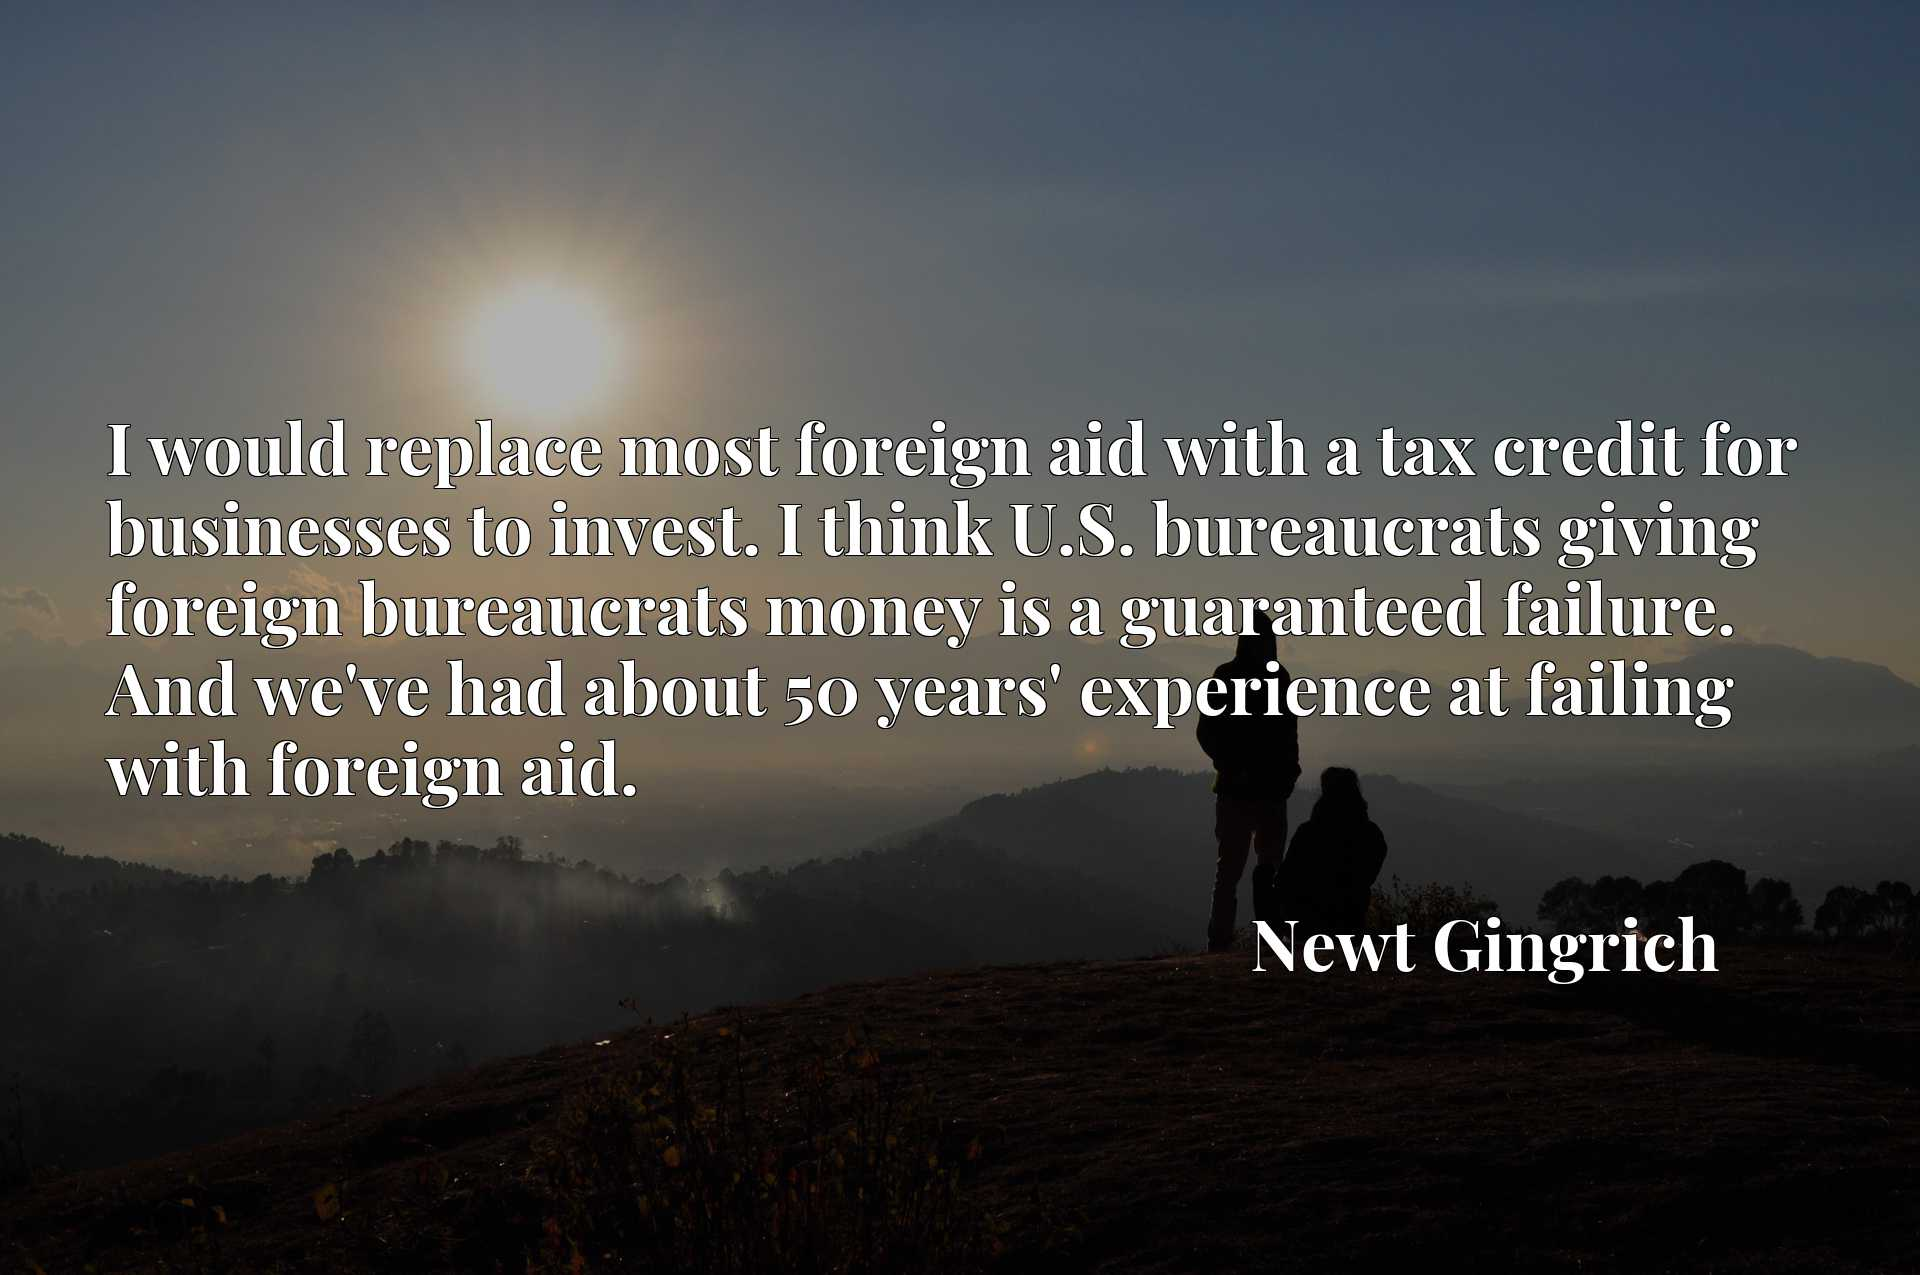 I would replace most foreign aid with a tax credit for businesses to invest. I think U.S. bureaucrats giving foreign bureaucrats money is a guaranteed failure. And we've had about 50 years' experience at failing with foreign aid.